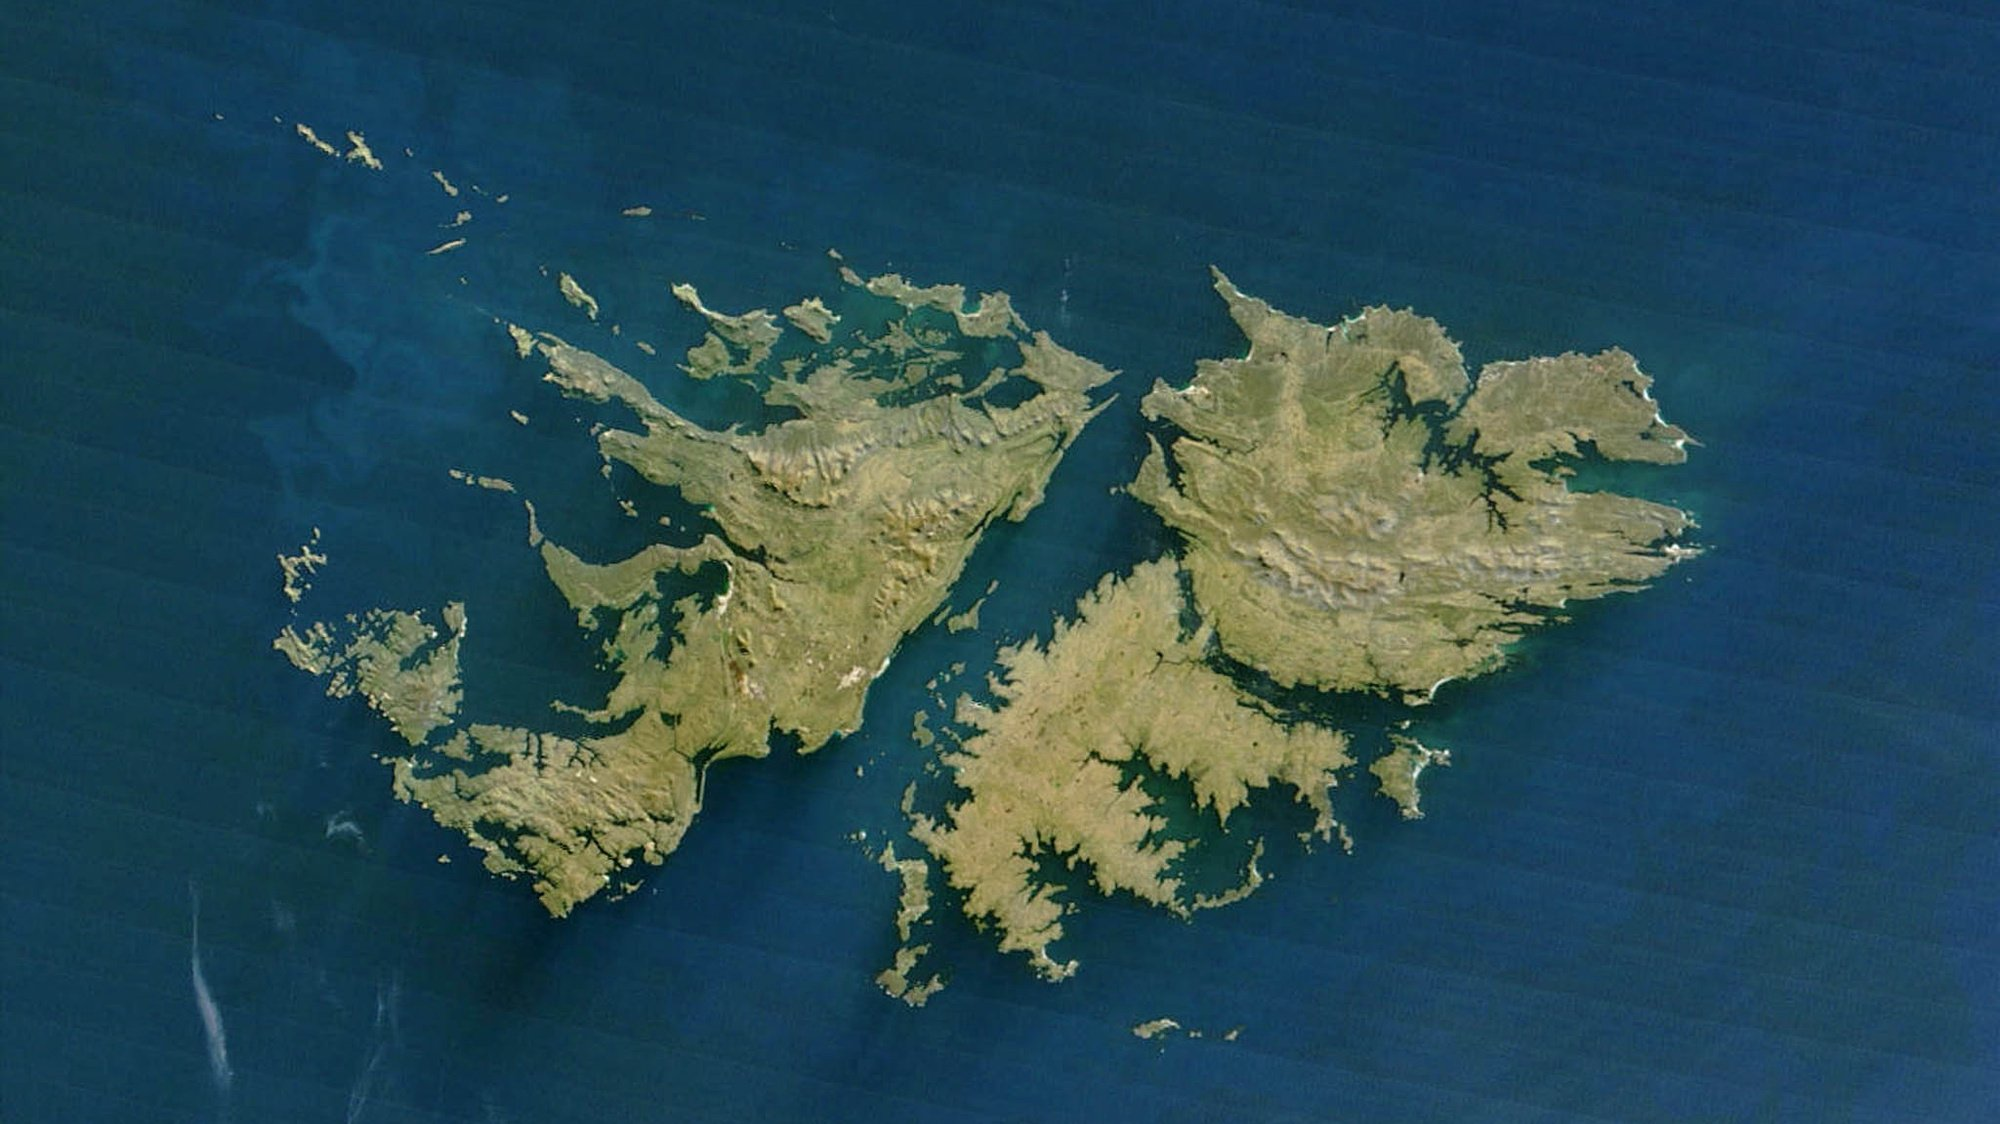 This NASA Terra satellite released 14 July, 2003 shows the Falkland Islands.The Falklands are a small group of islands 480 kilometers (about 300 miles) east of the Strait of Magellan (the straight crossing the southern point of South America). The two main islands are East Falkland and West Falkland, though some 200 small islands are also part of this British-administered colony. The islands are rocky, wet, and windswept, but are ideally suited for sheep-raising. The waters surrounding the islands are home to great whale and seal populations, and were hunted heavily in the not-too-distant past. Fish are also abundant, and besides sheep, the fishing trade is one of the mainstays of this distant island's economy. AFP PHOTO/NASA